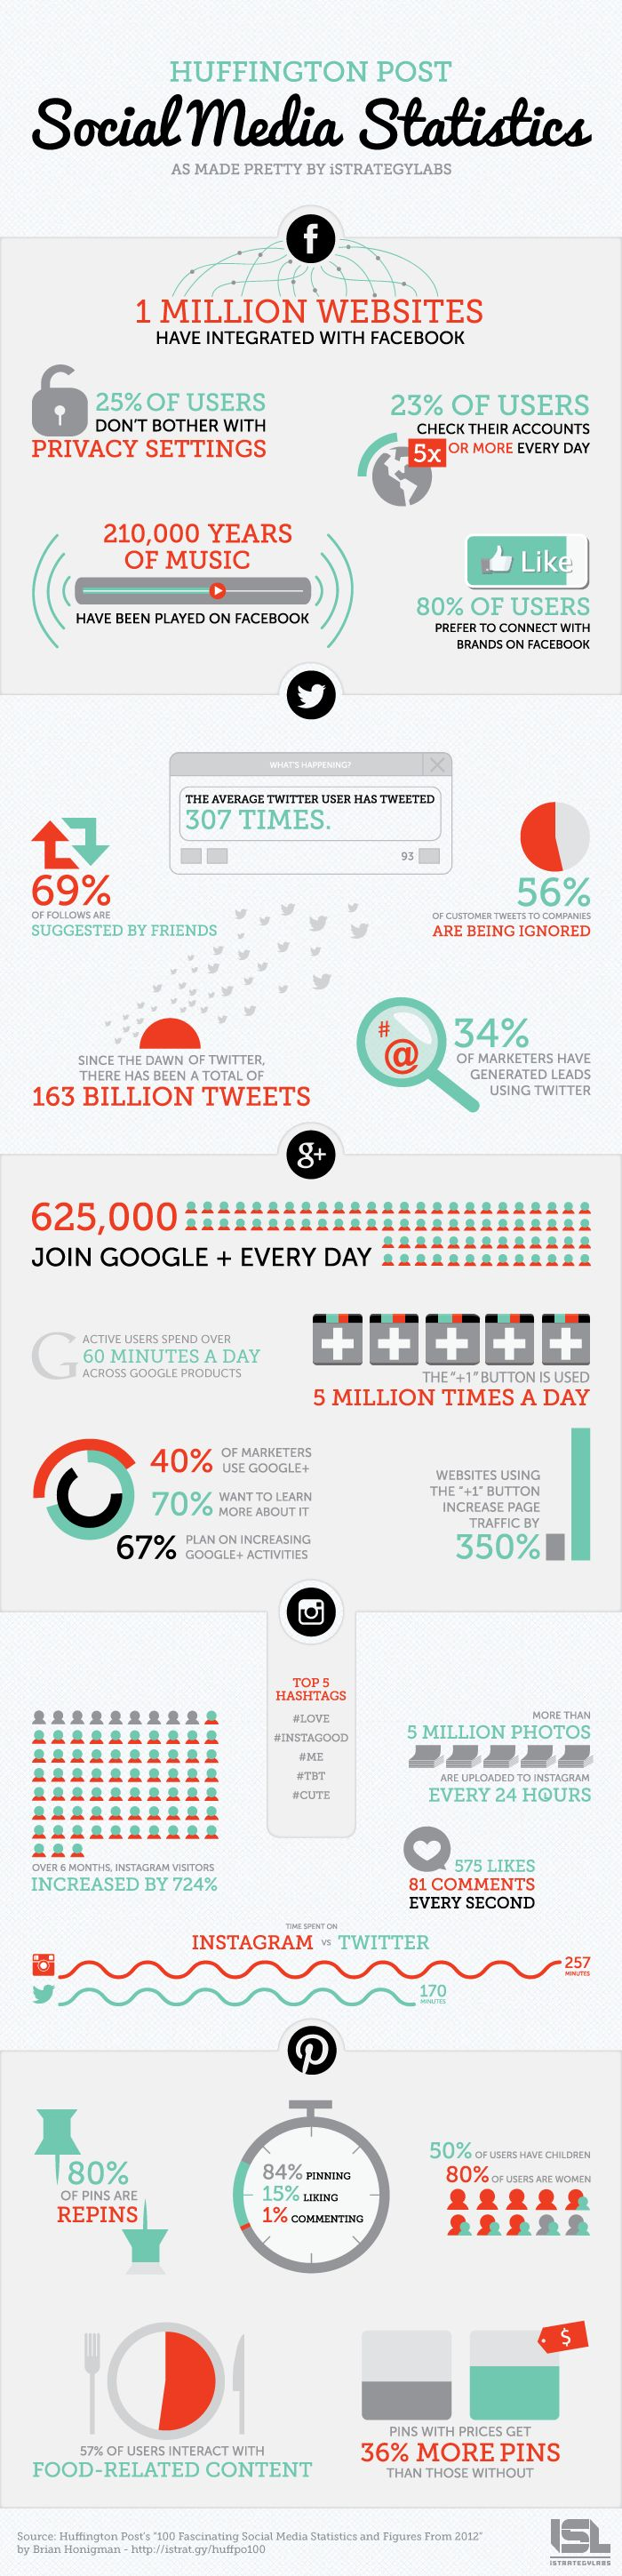 This great little infographic was taken from velocity digital blog. Has some rather interesting stats :)